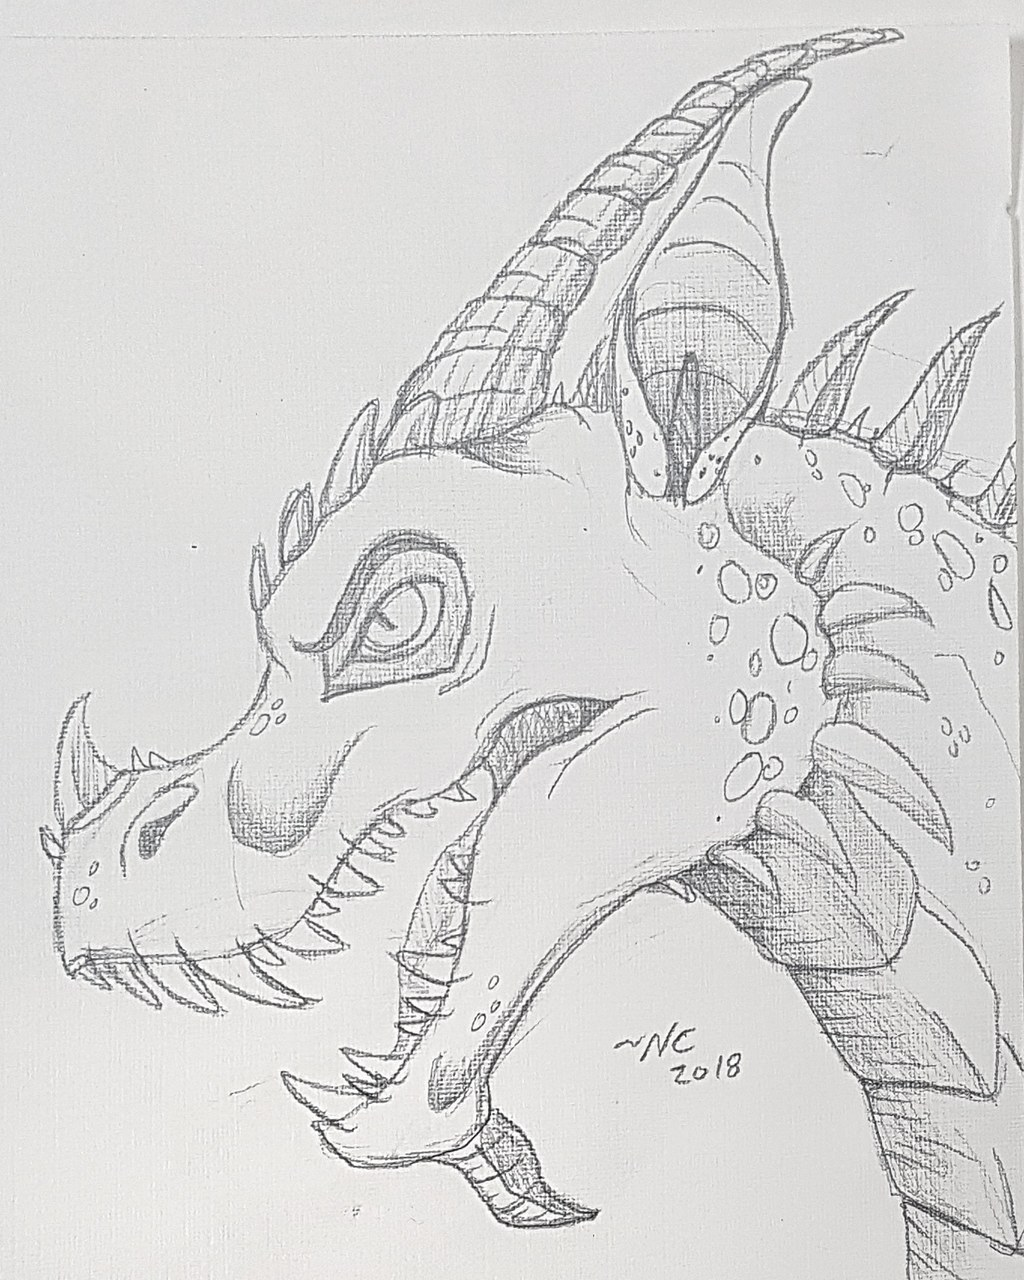 Most recent image: Dragon doodle